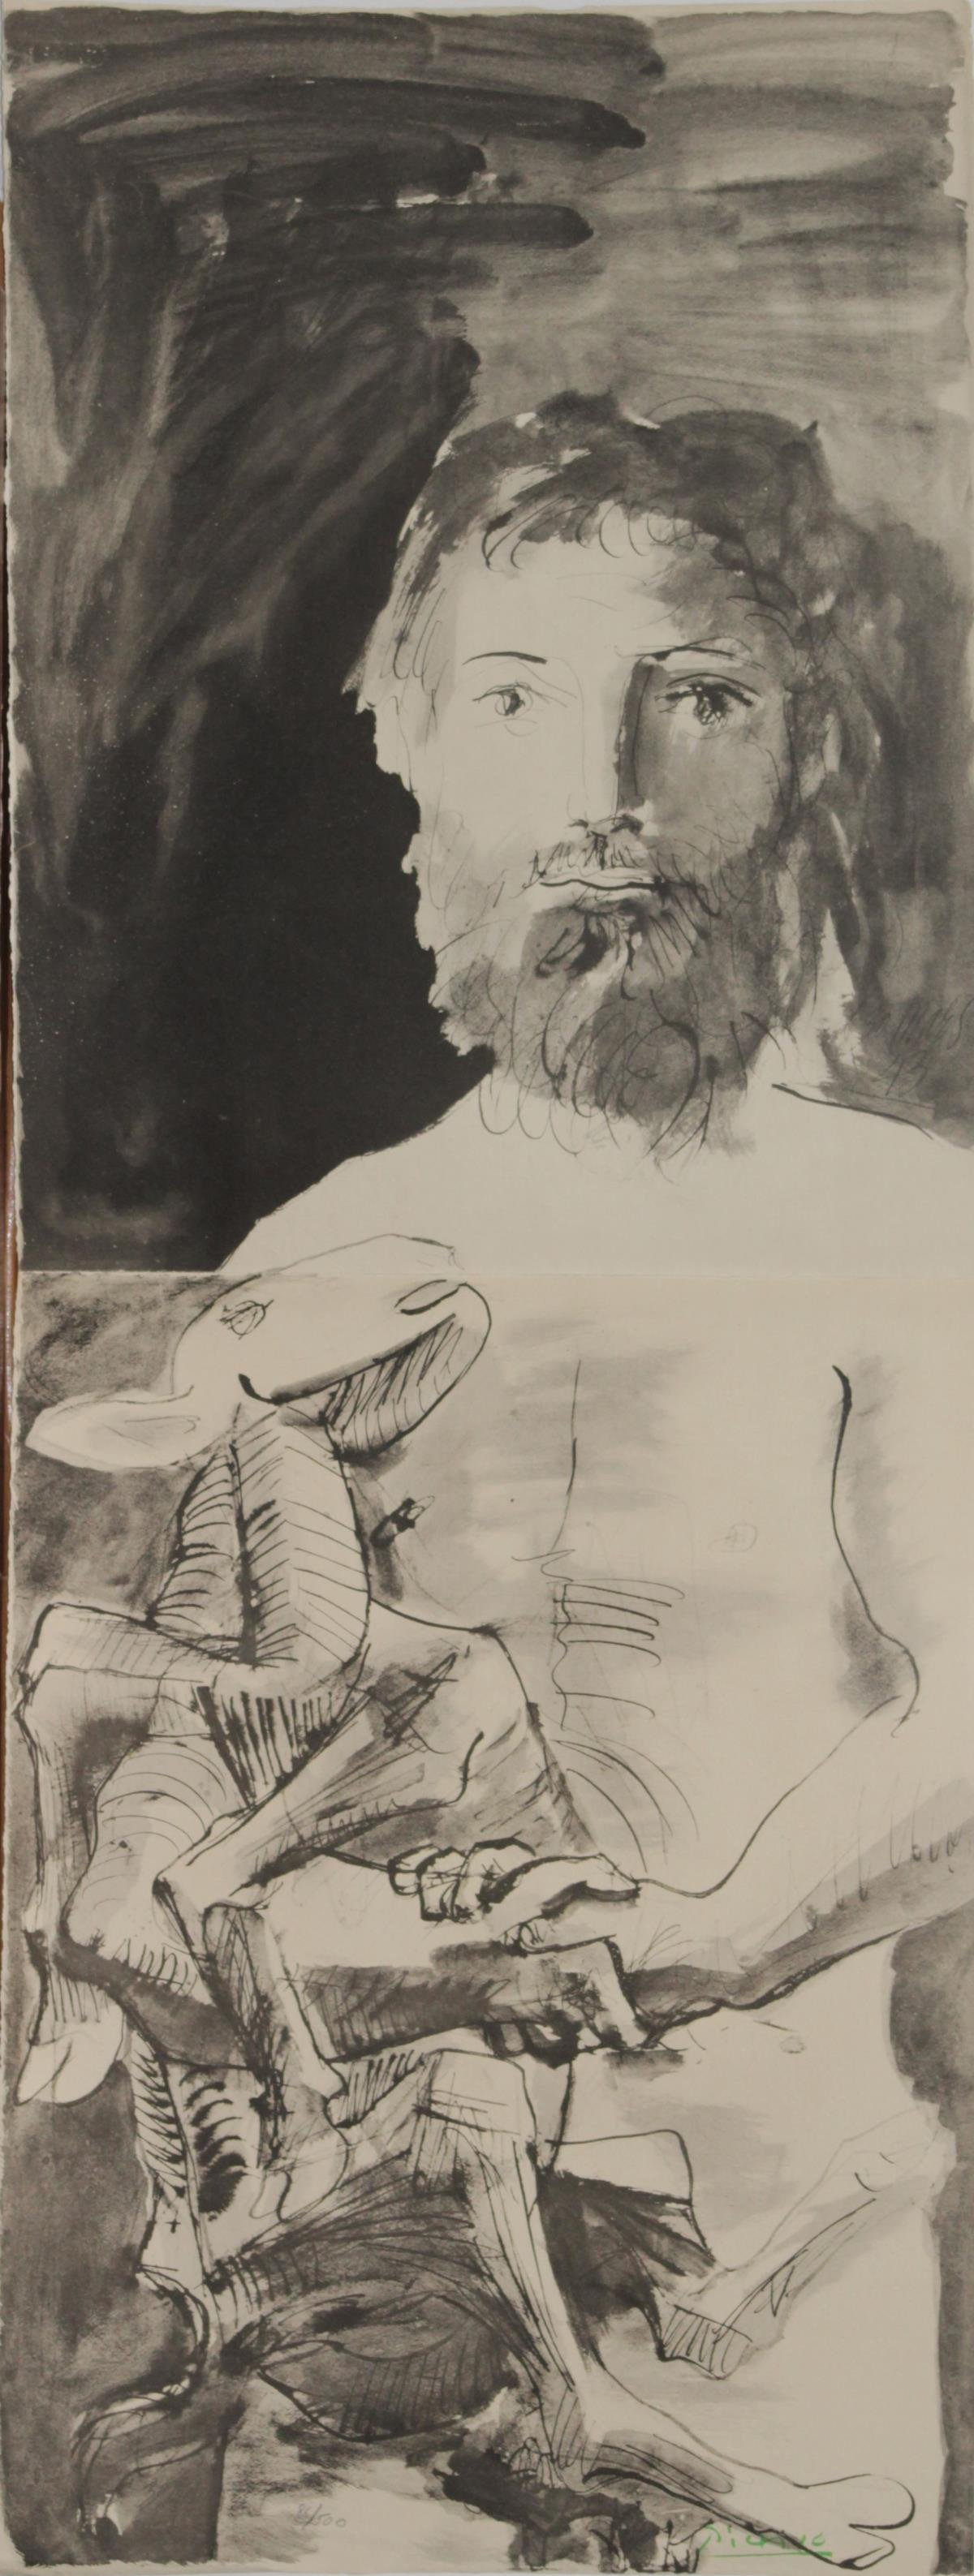 Pablo Picasso (After) - Man with Sheep